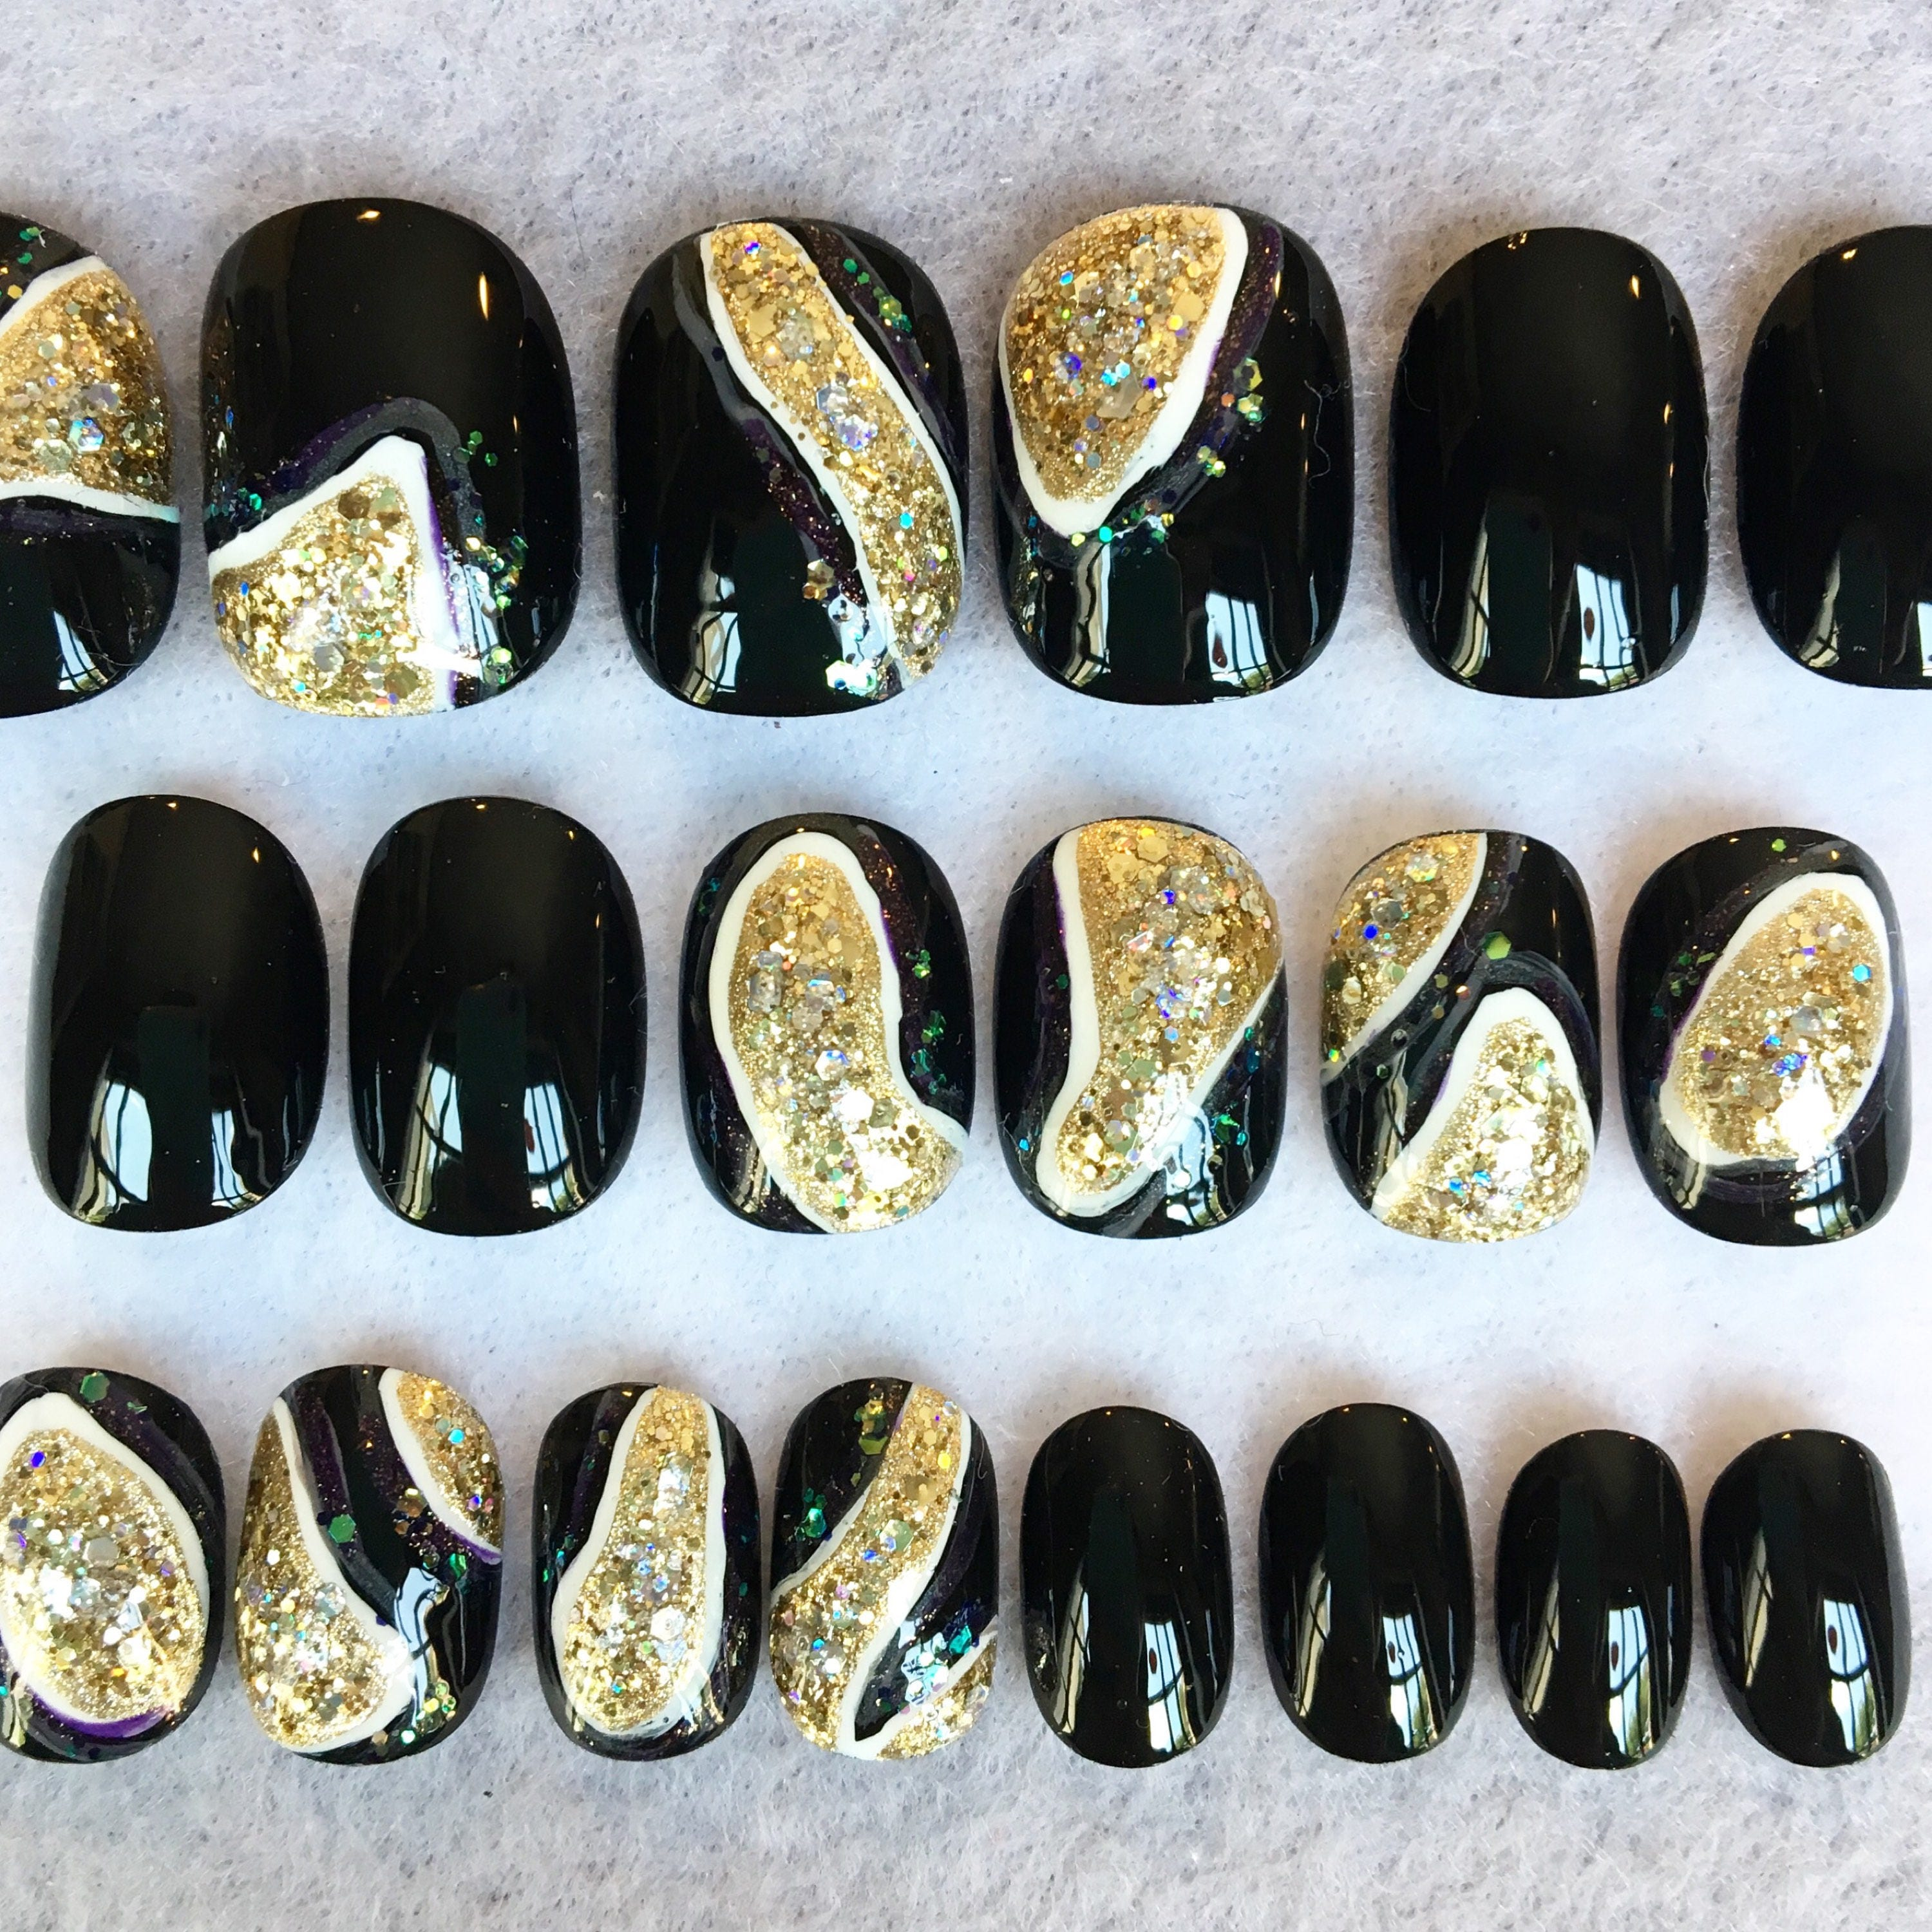 Black And Gold Geode Nails * Fake Nails * Faux Nails * Glue On Nails ...